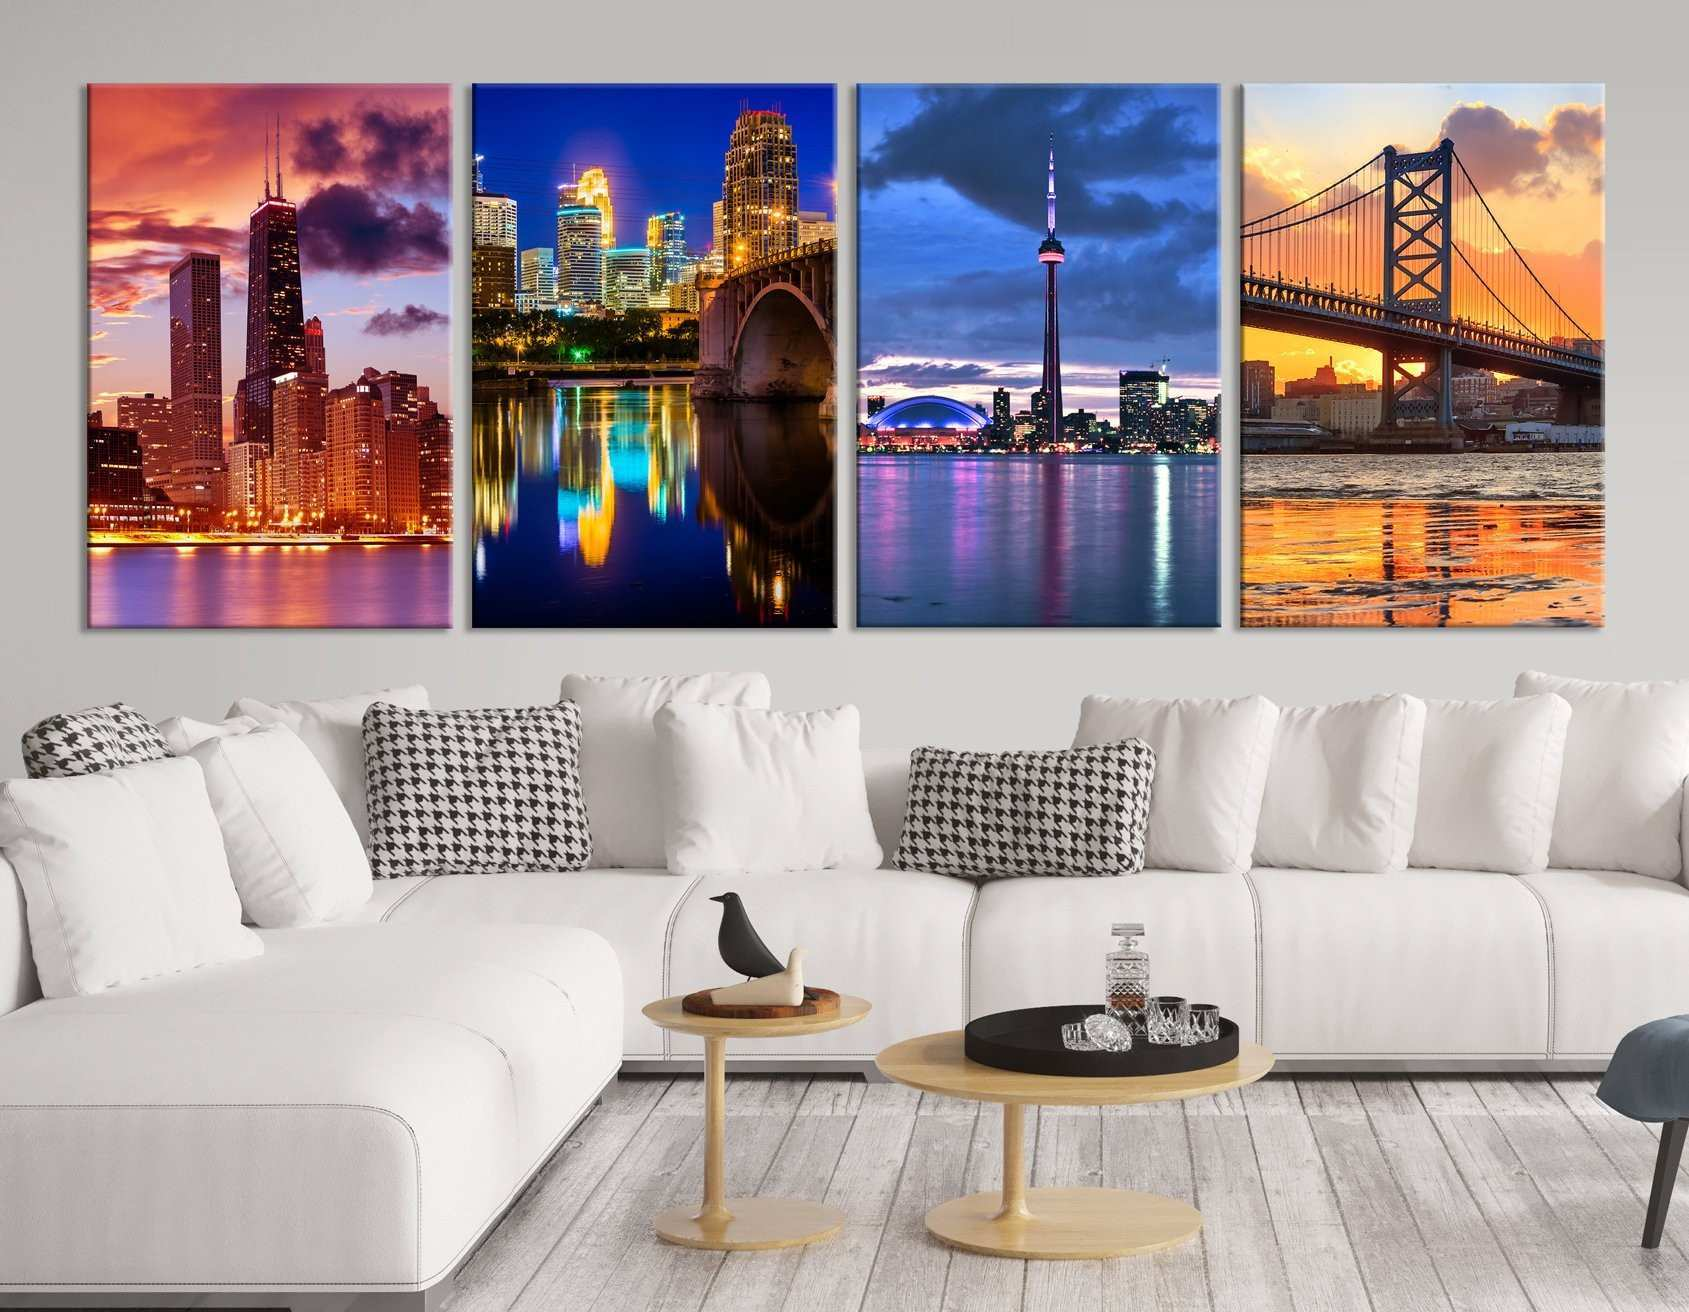 City Collage Wall Art Print Where You Have Lived Cities Canvas